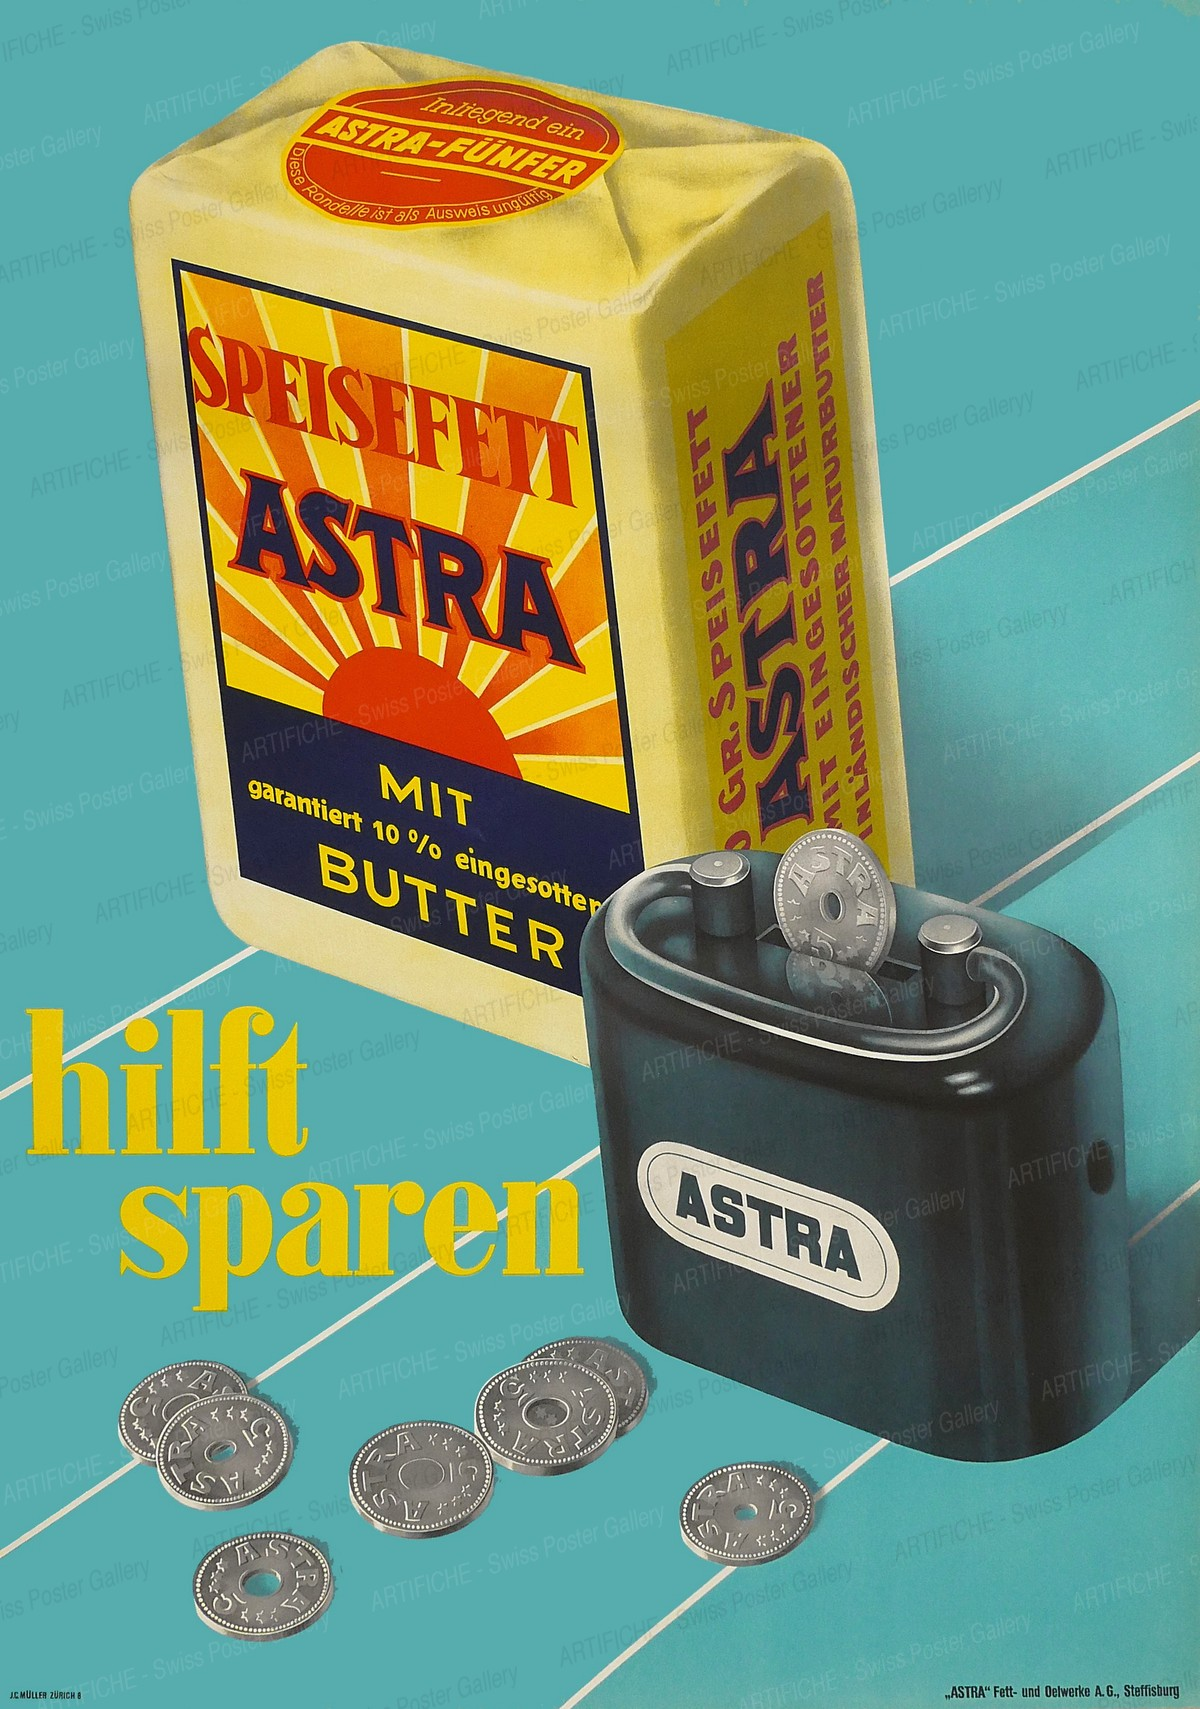 Astra cooking fat, Werner Allenbach